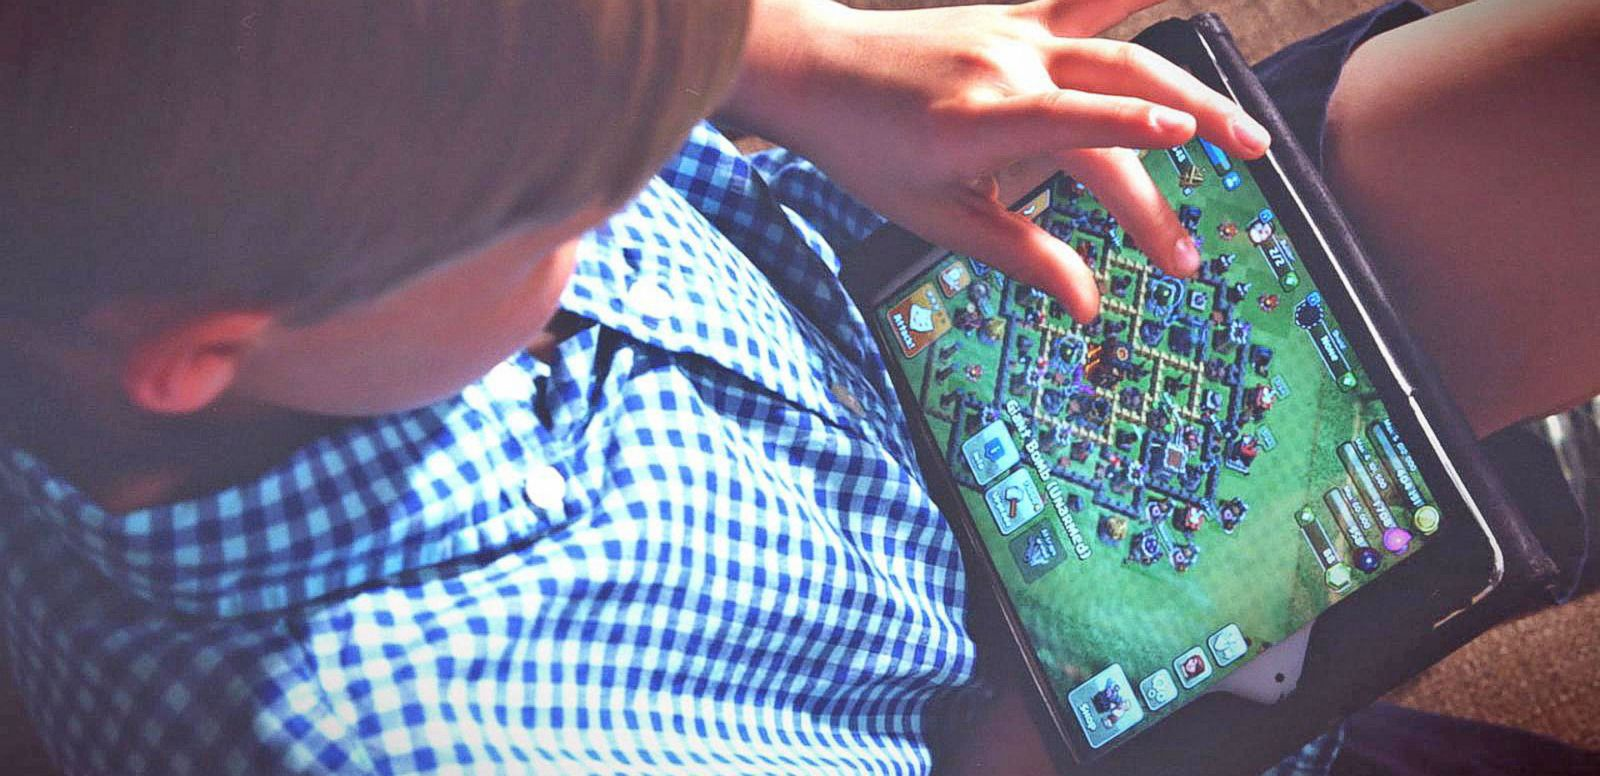 VIDEO: What Your Kids Don't Want You to Know: Online Gaming Dangers